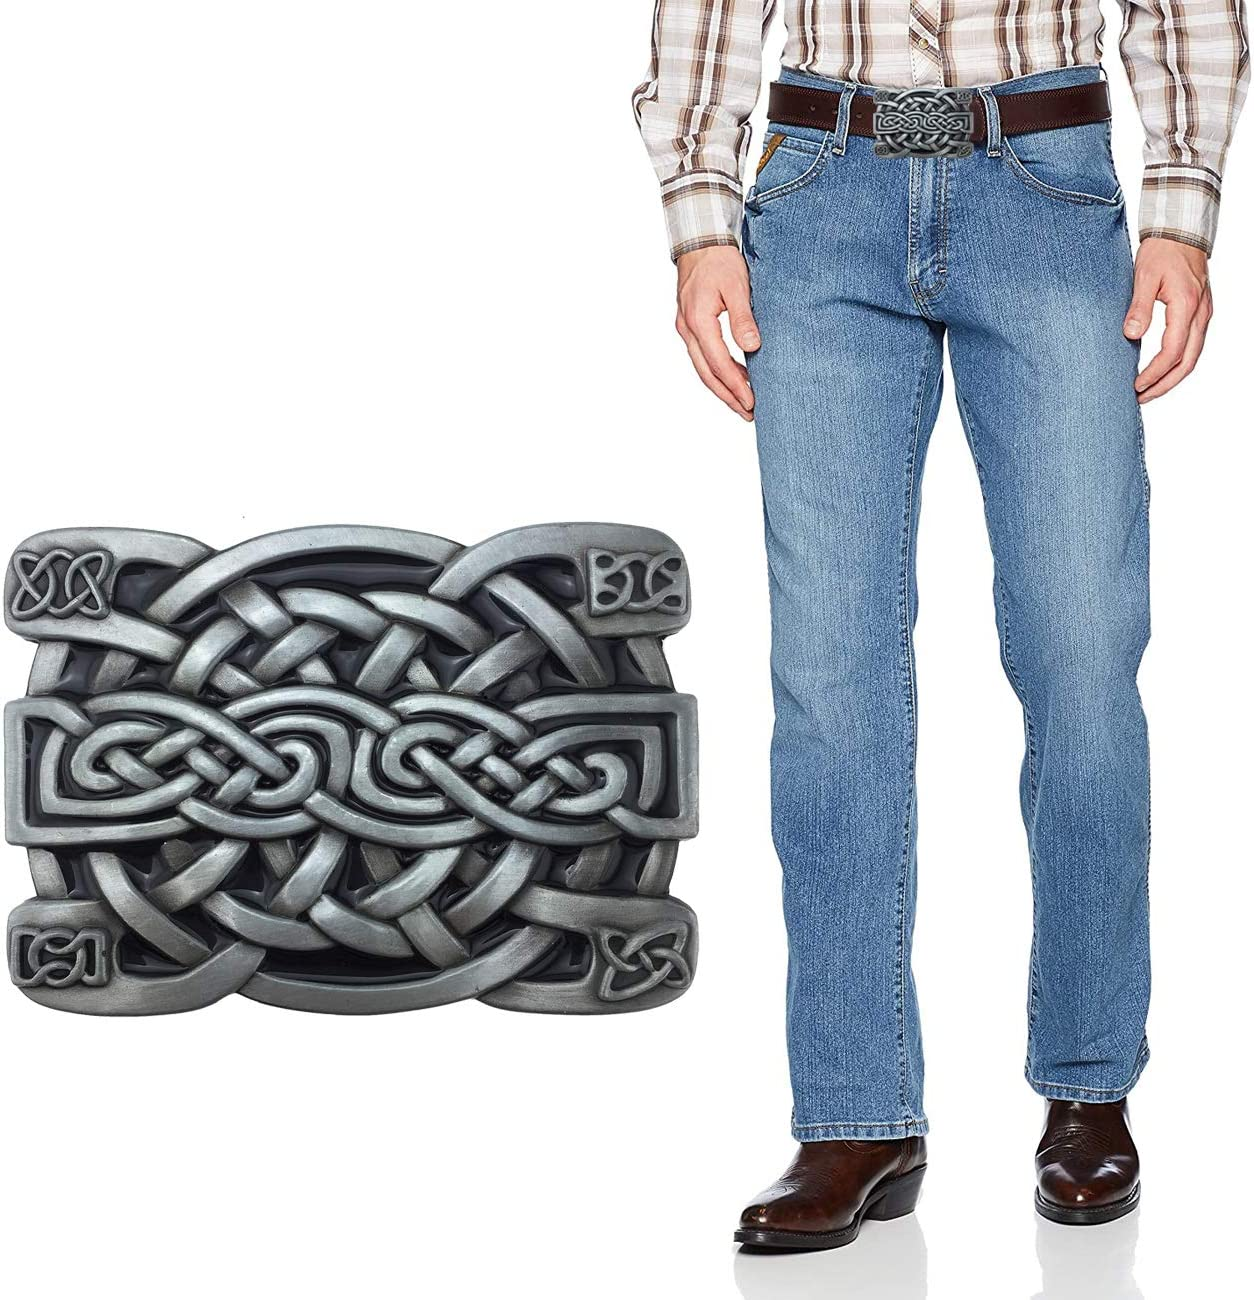 XGALA Fashion Mens Retro Western Cowboy Celtic Knot Metal Belt Buckle Black Enamel, Medium